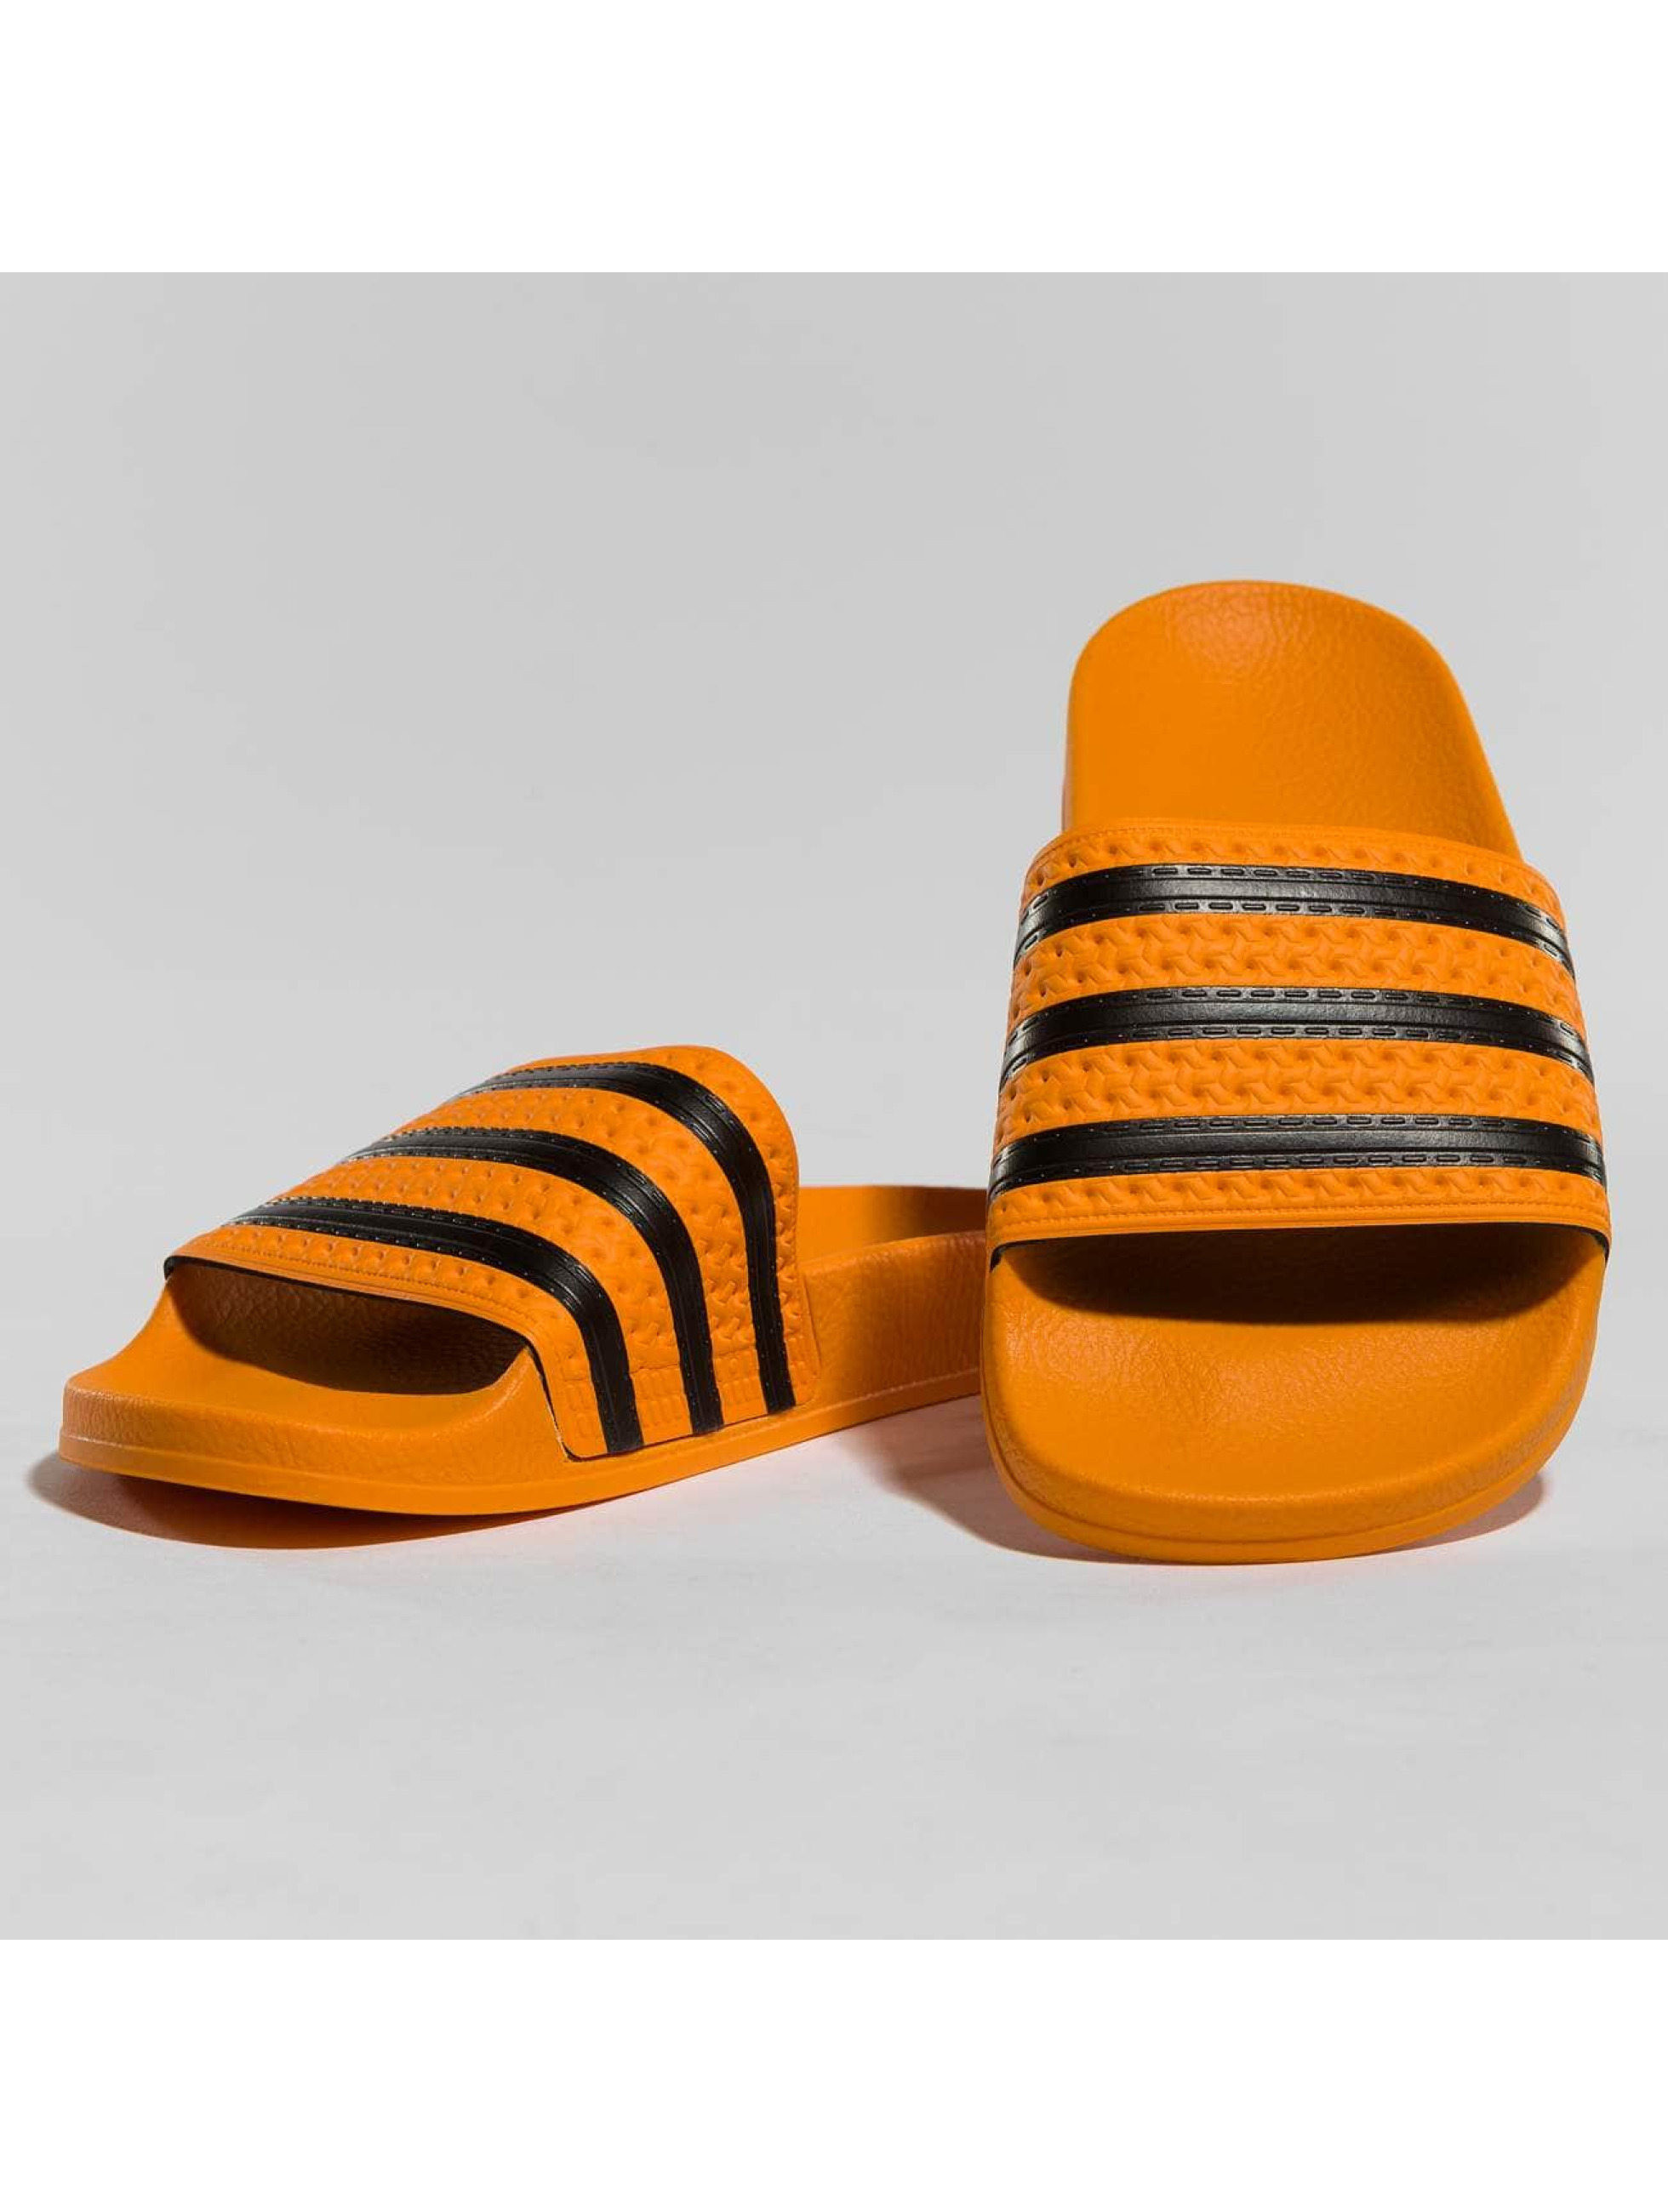 adidas originals Claquettes & Sandales Stripes orange